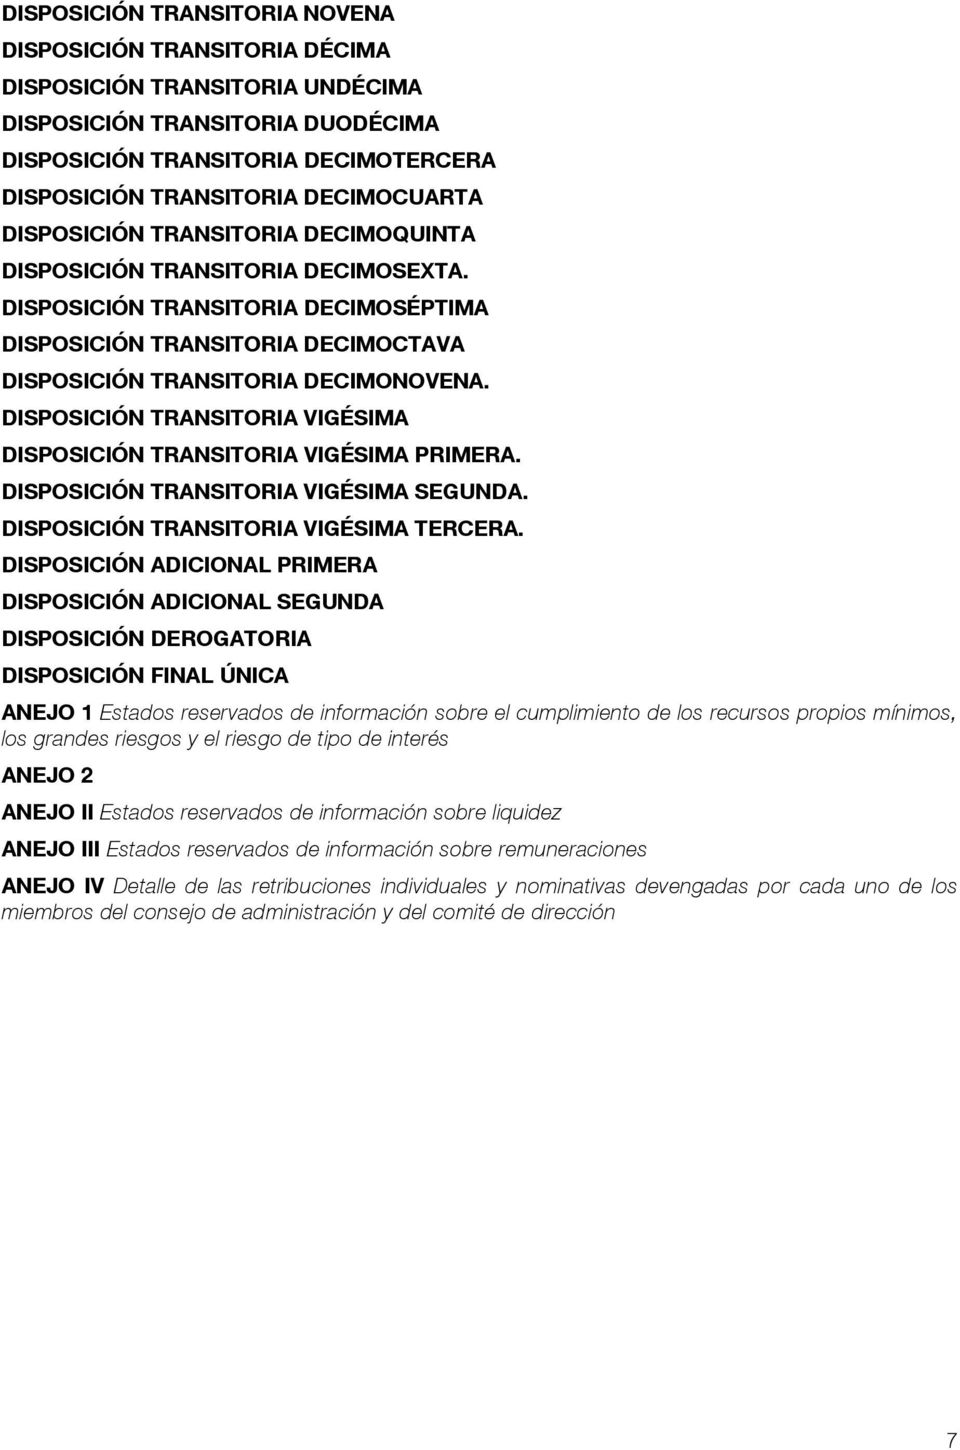 DISPOSICIÓN TRANSITORIA VIGÉSIMA DISPOSICIÓN TRANSITORIA VIGÉSIMA PRIMERA. DISPOSICIÓN TRANSITORIA VIGÉSIMA SEGUNDA. DISPOSICIÓN TRANSITORIA VIGÉSIMA TERCERA.